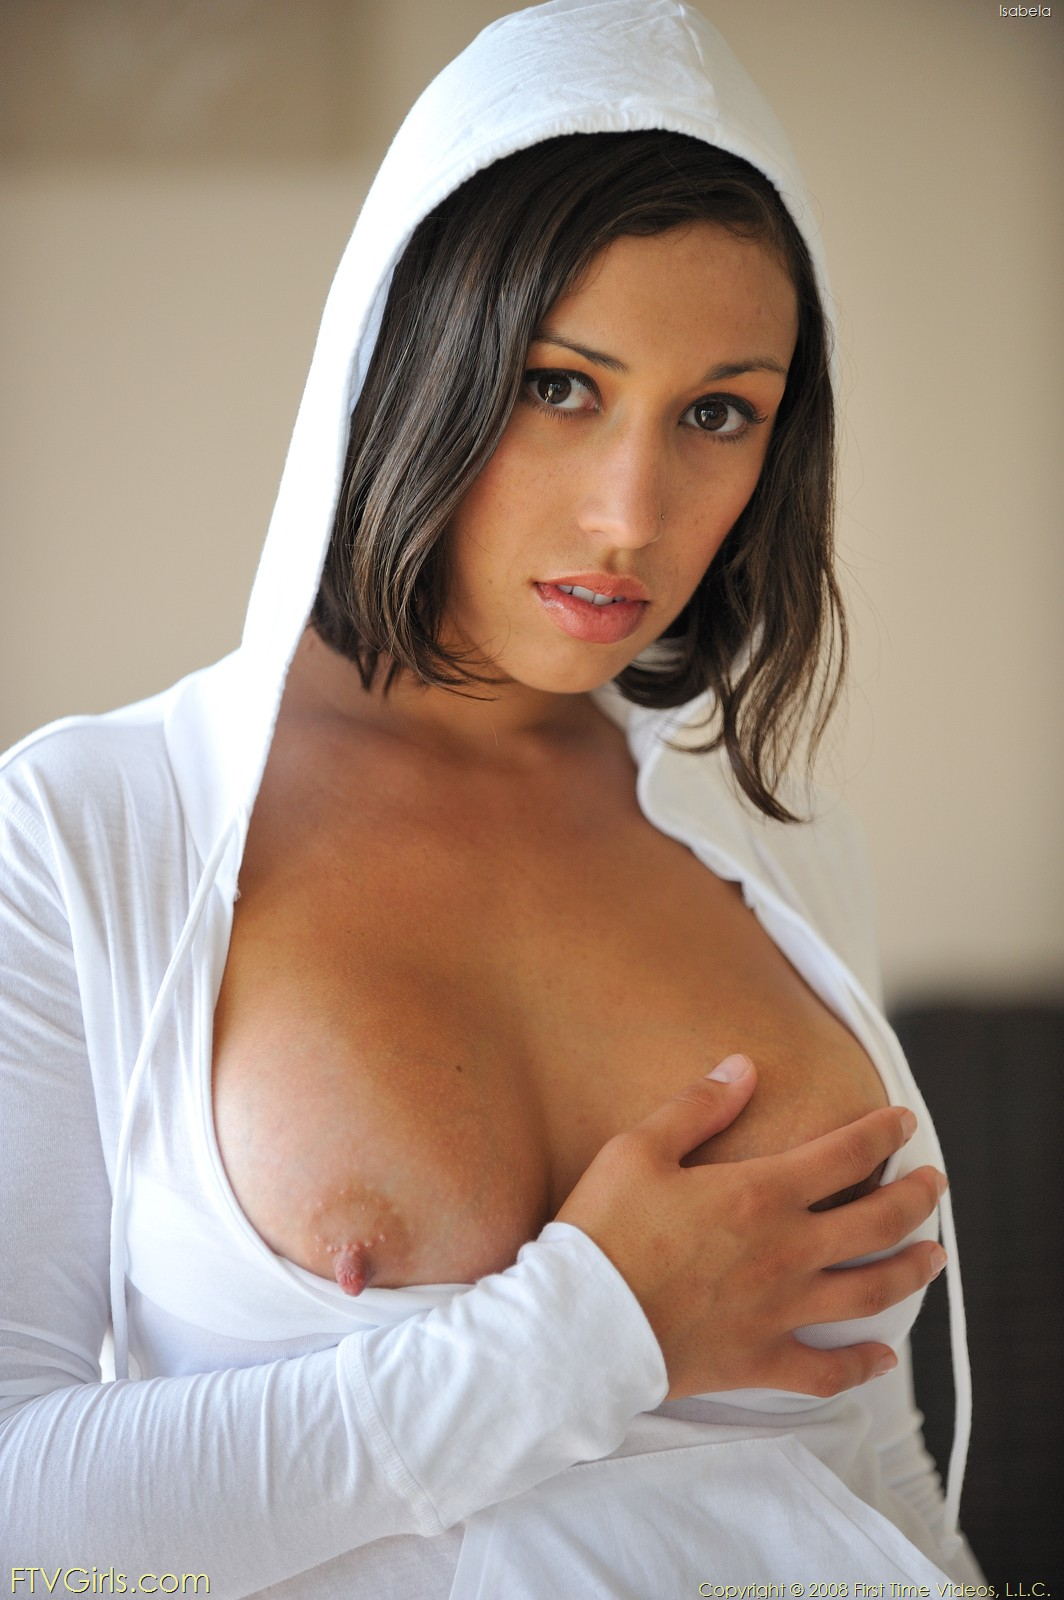 Italian girls with big boobs